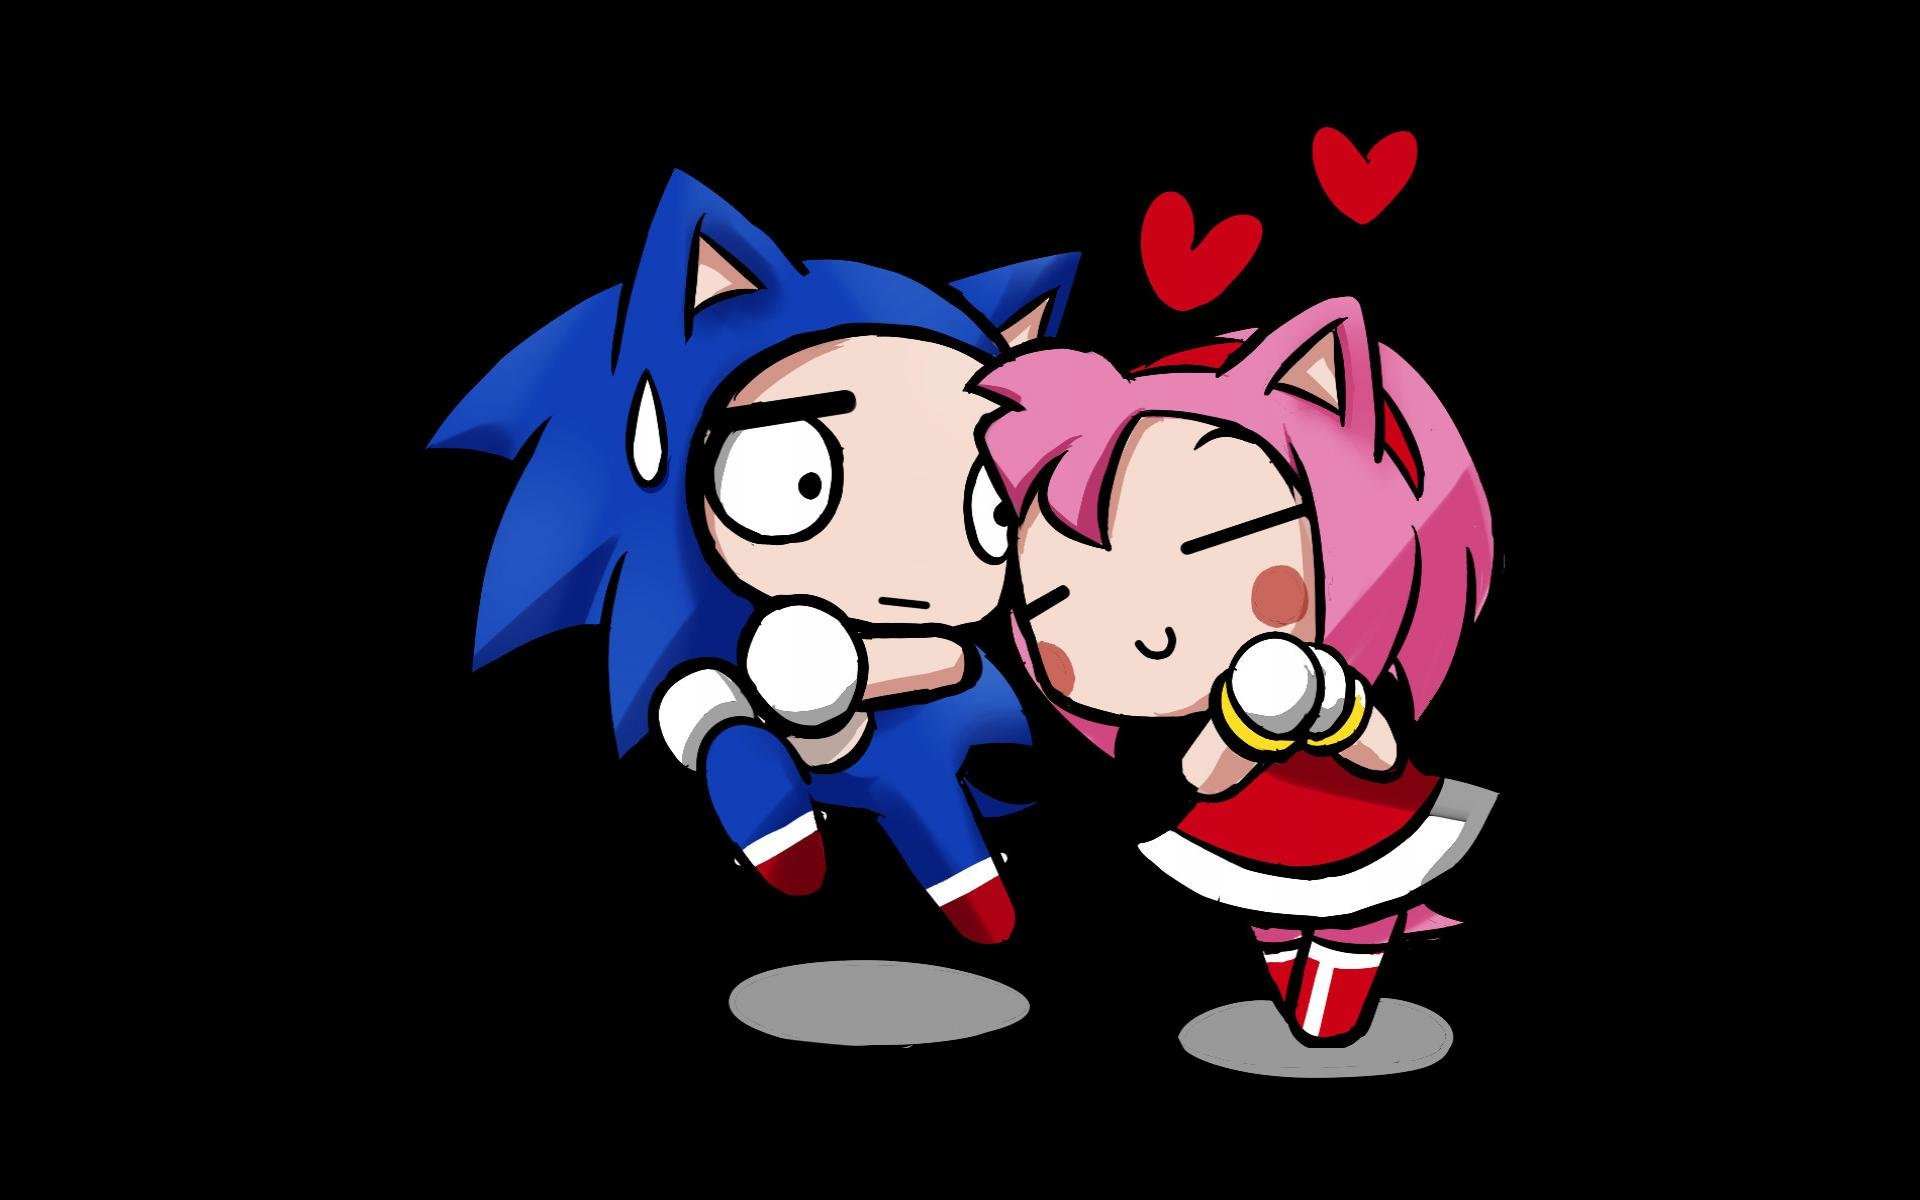 Amy rose wallpapers hd for desktop backgrounds free amy rose high quality wallpaper id52098 for hd 1920x1200 pc voltagebd Gallery